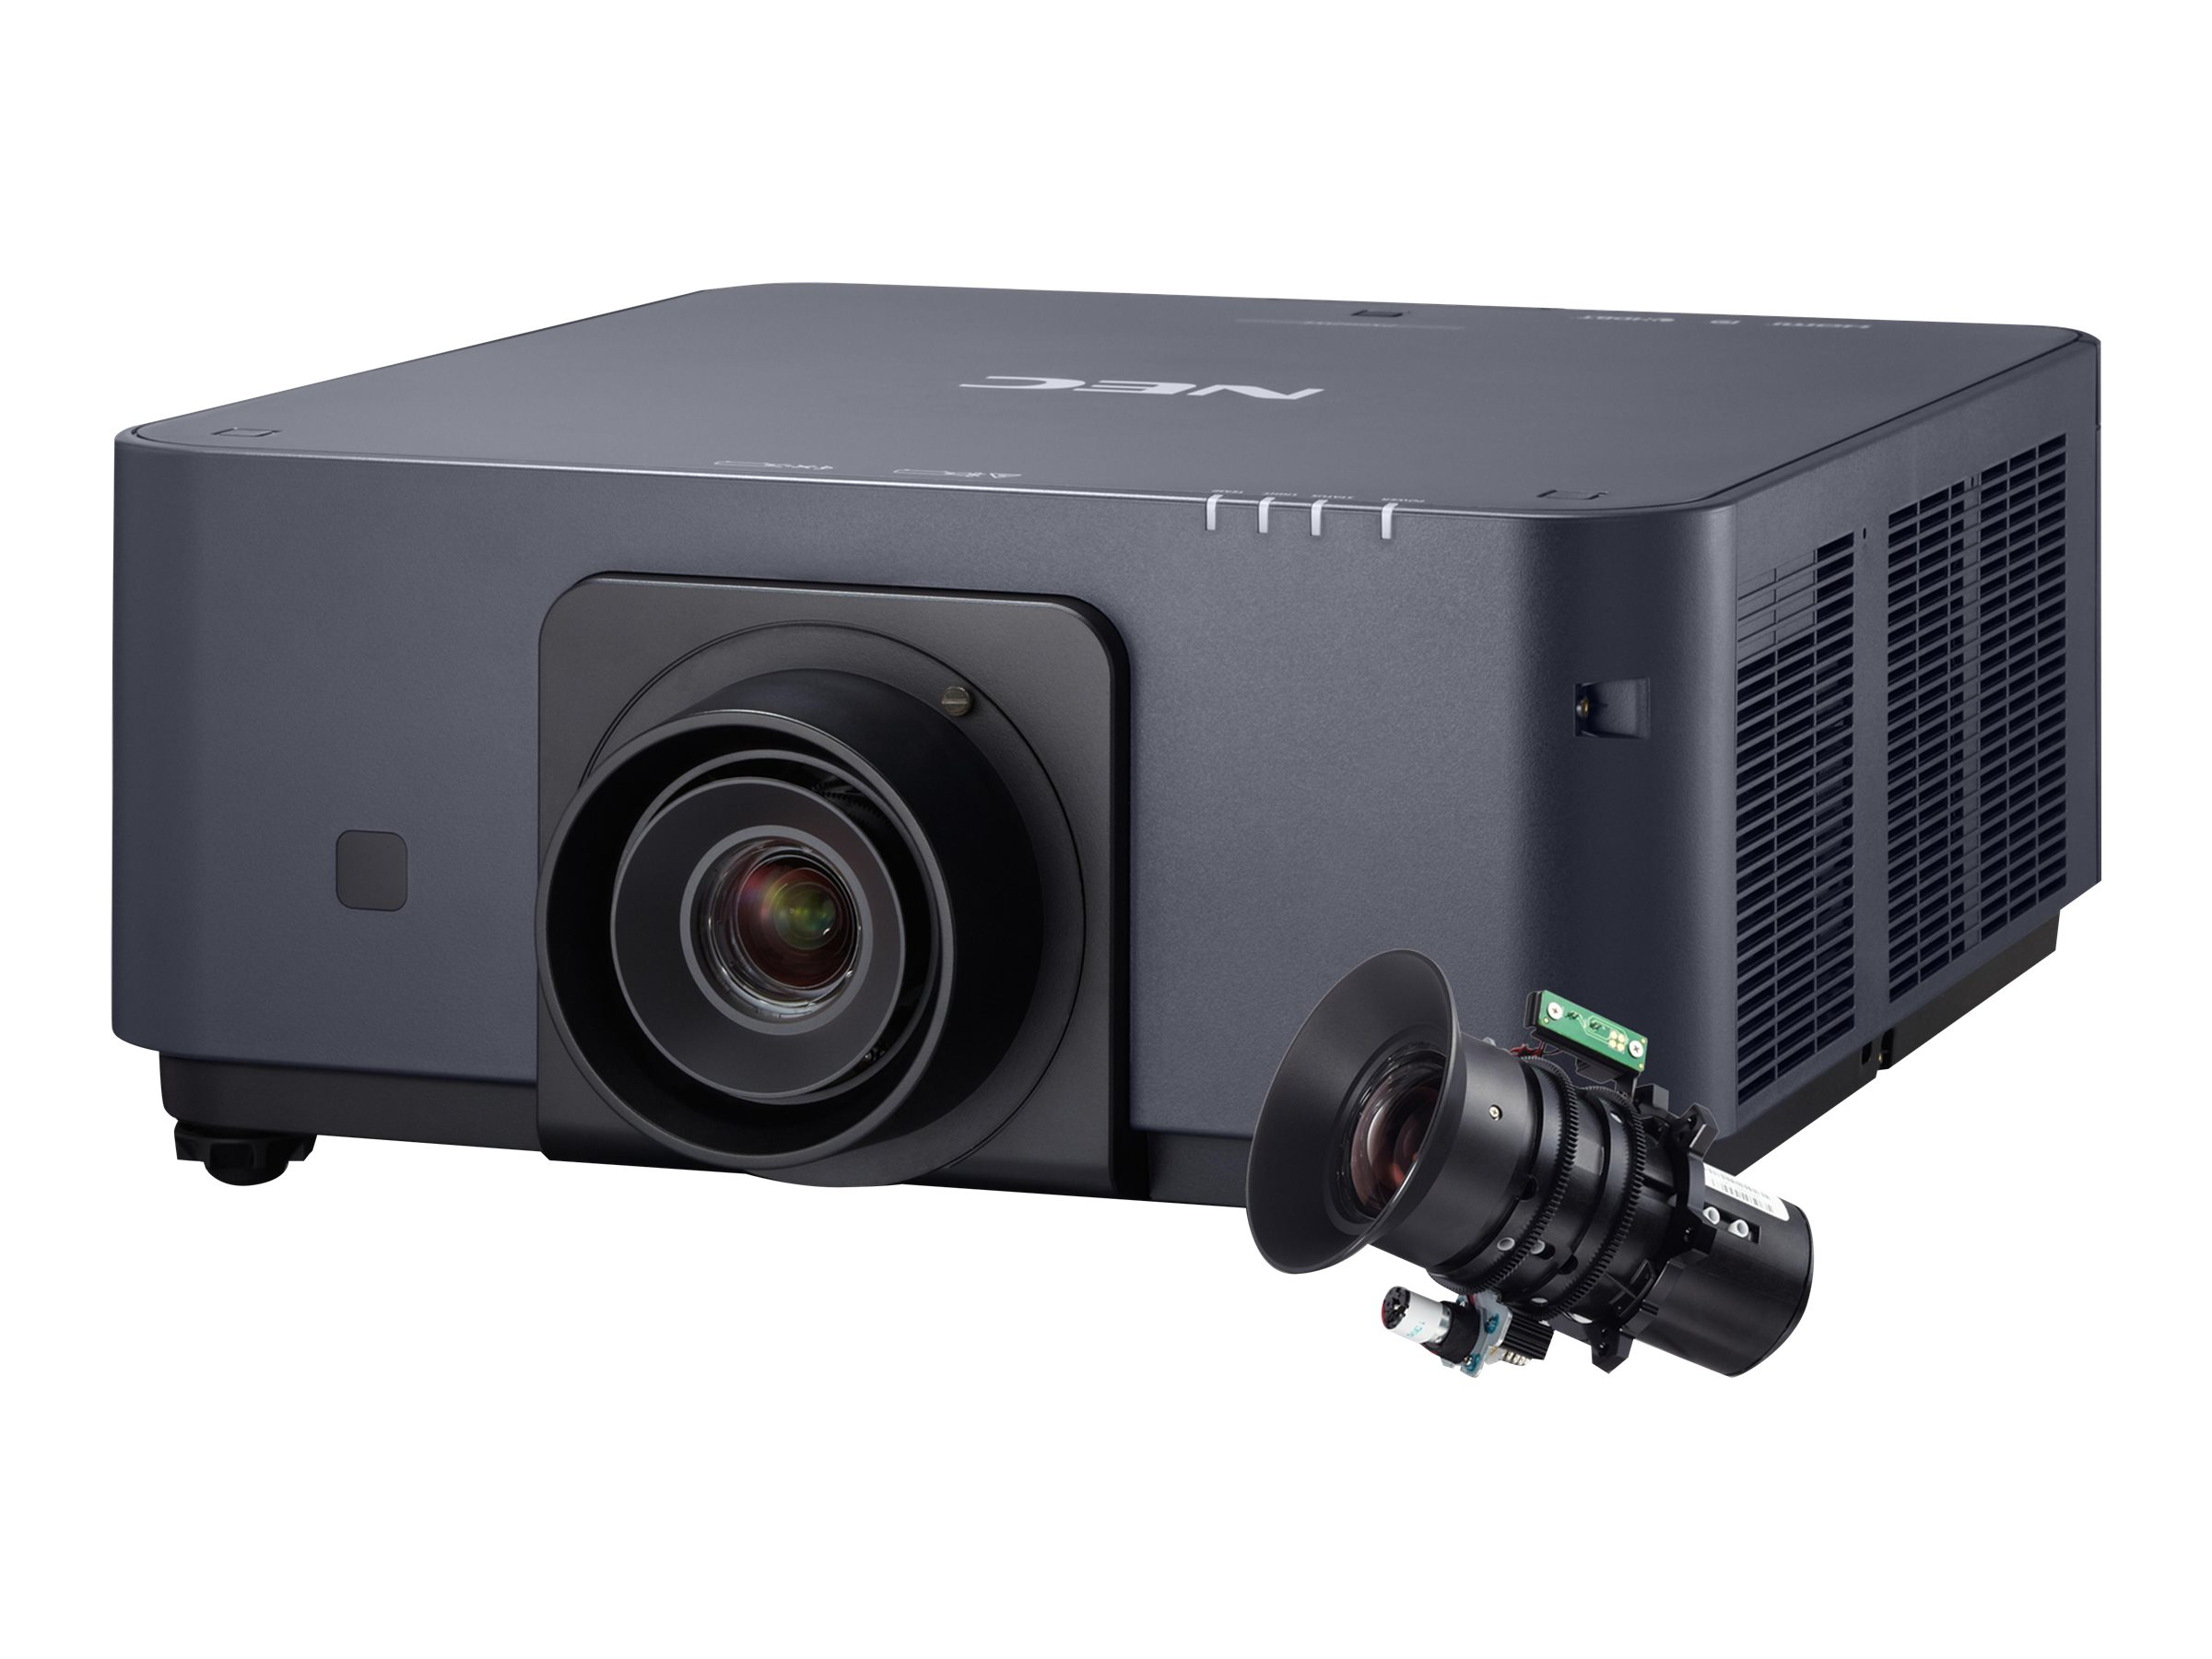 NEC PX602WL WXGA DLP Projector, 6000 Lumens, Black with Zoom Lens